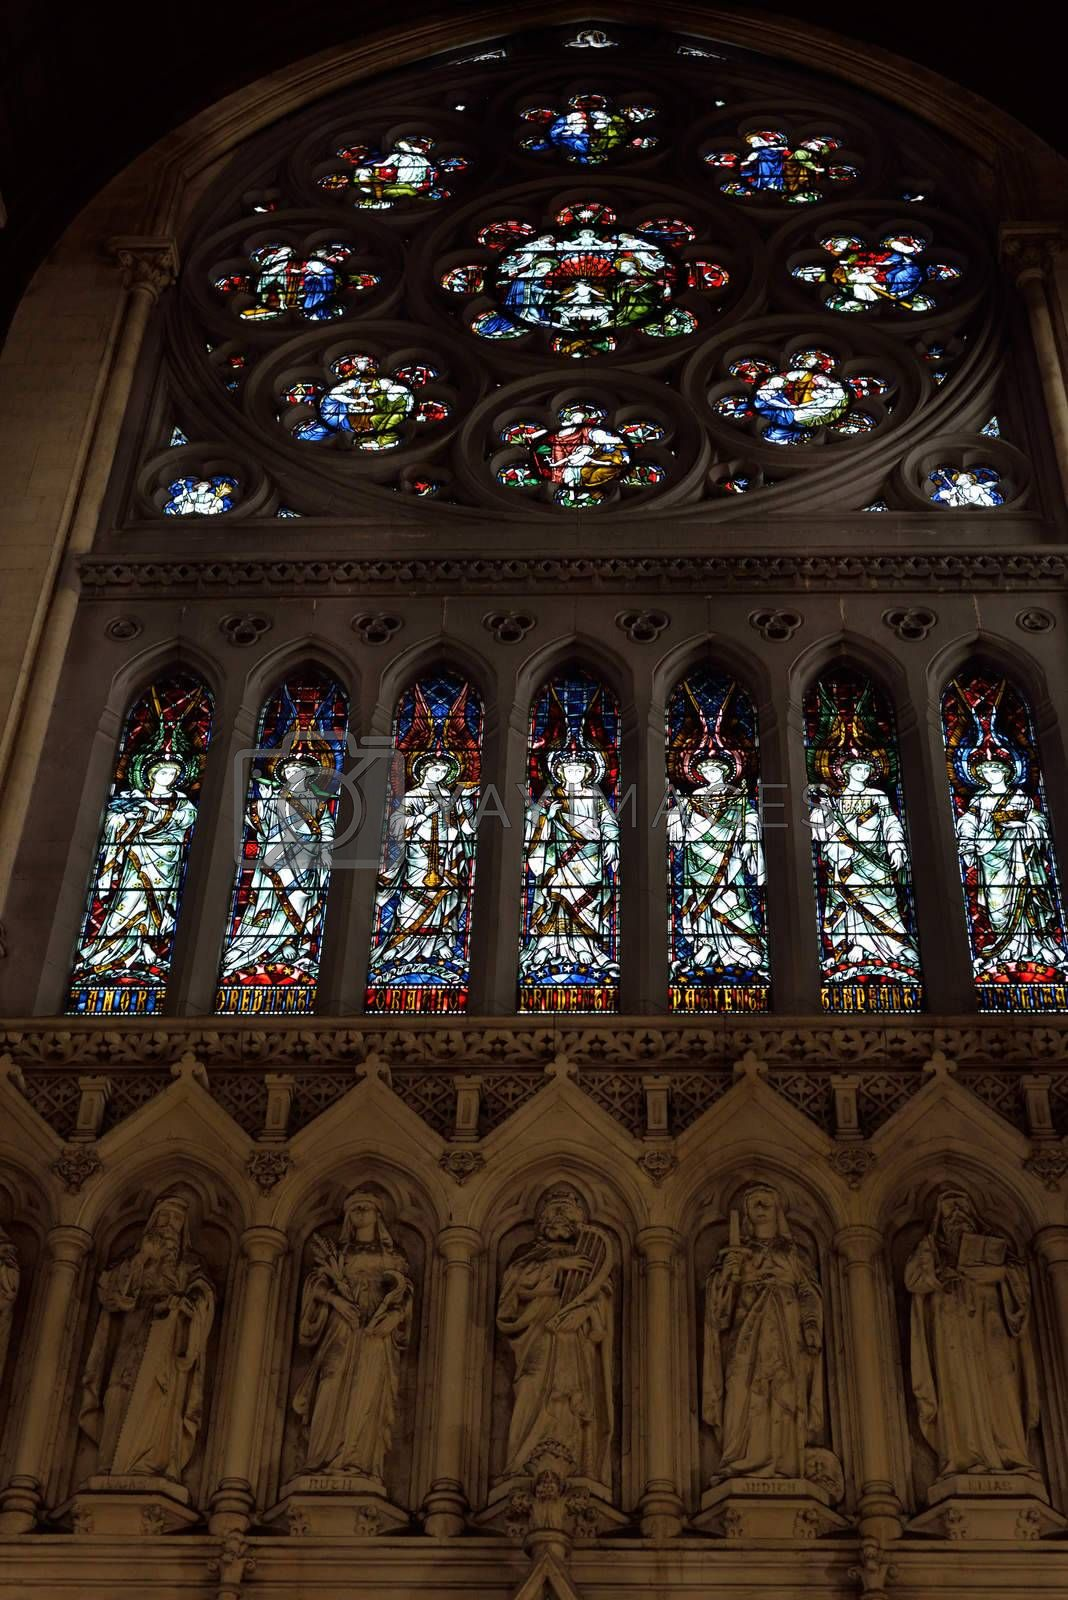 interior stained glass windows of  St Colman's Cathedral in cobh county cork ireland